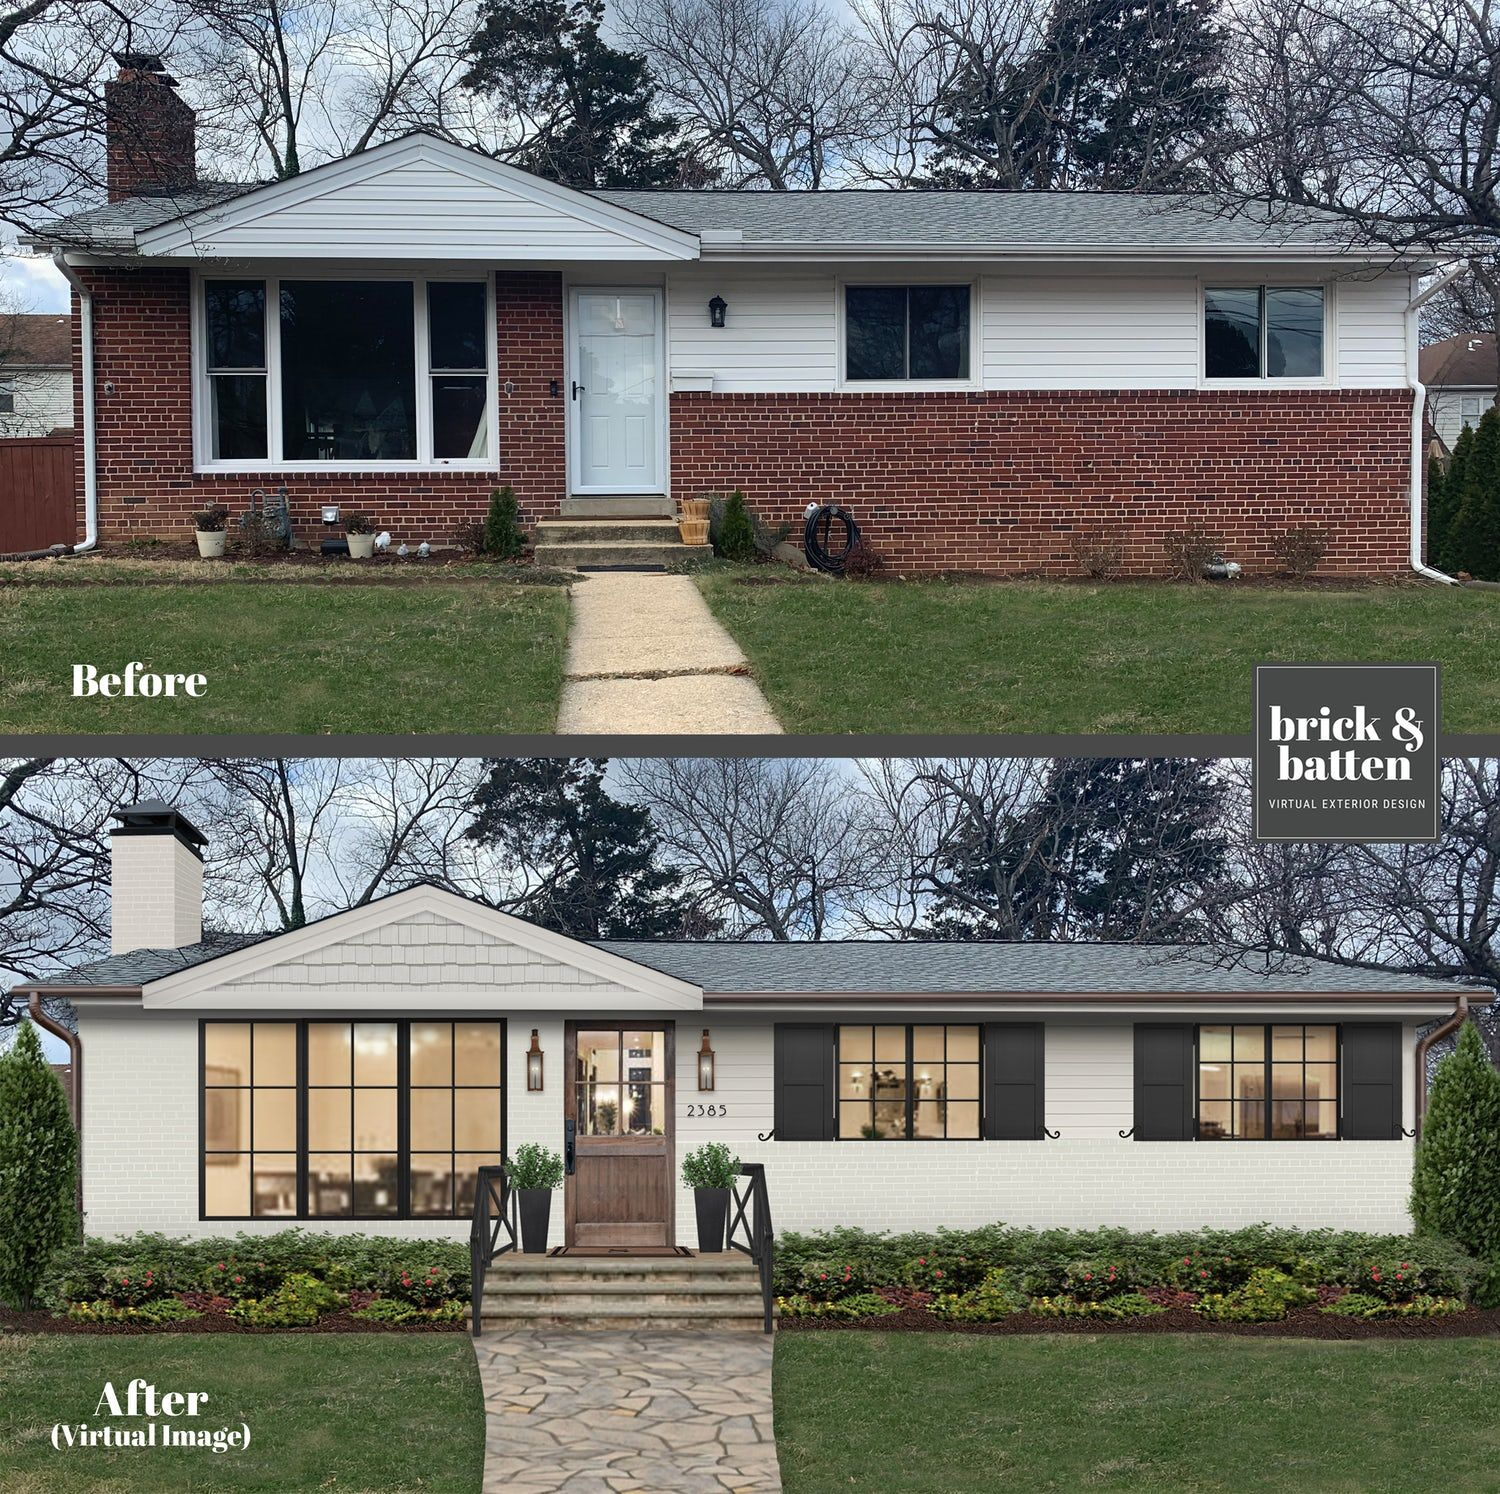 20 Painted Brick Houses To Inspire You In 2020 Blog Brick Batten In 2020 Brick Exterior House Painted Brick House Home Exterior Makeover